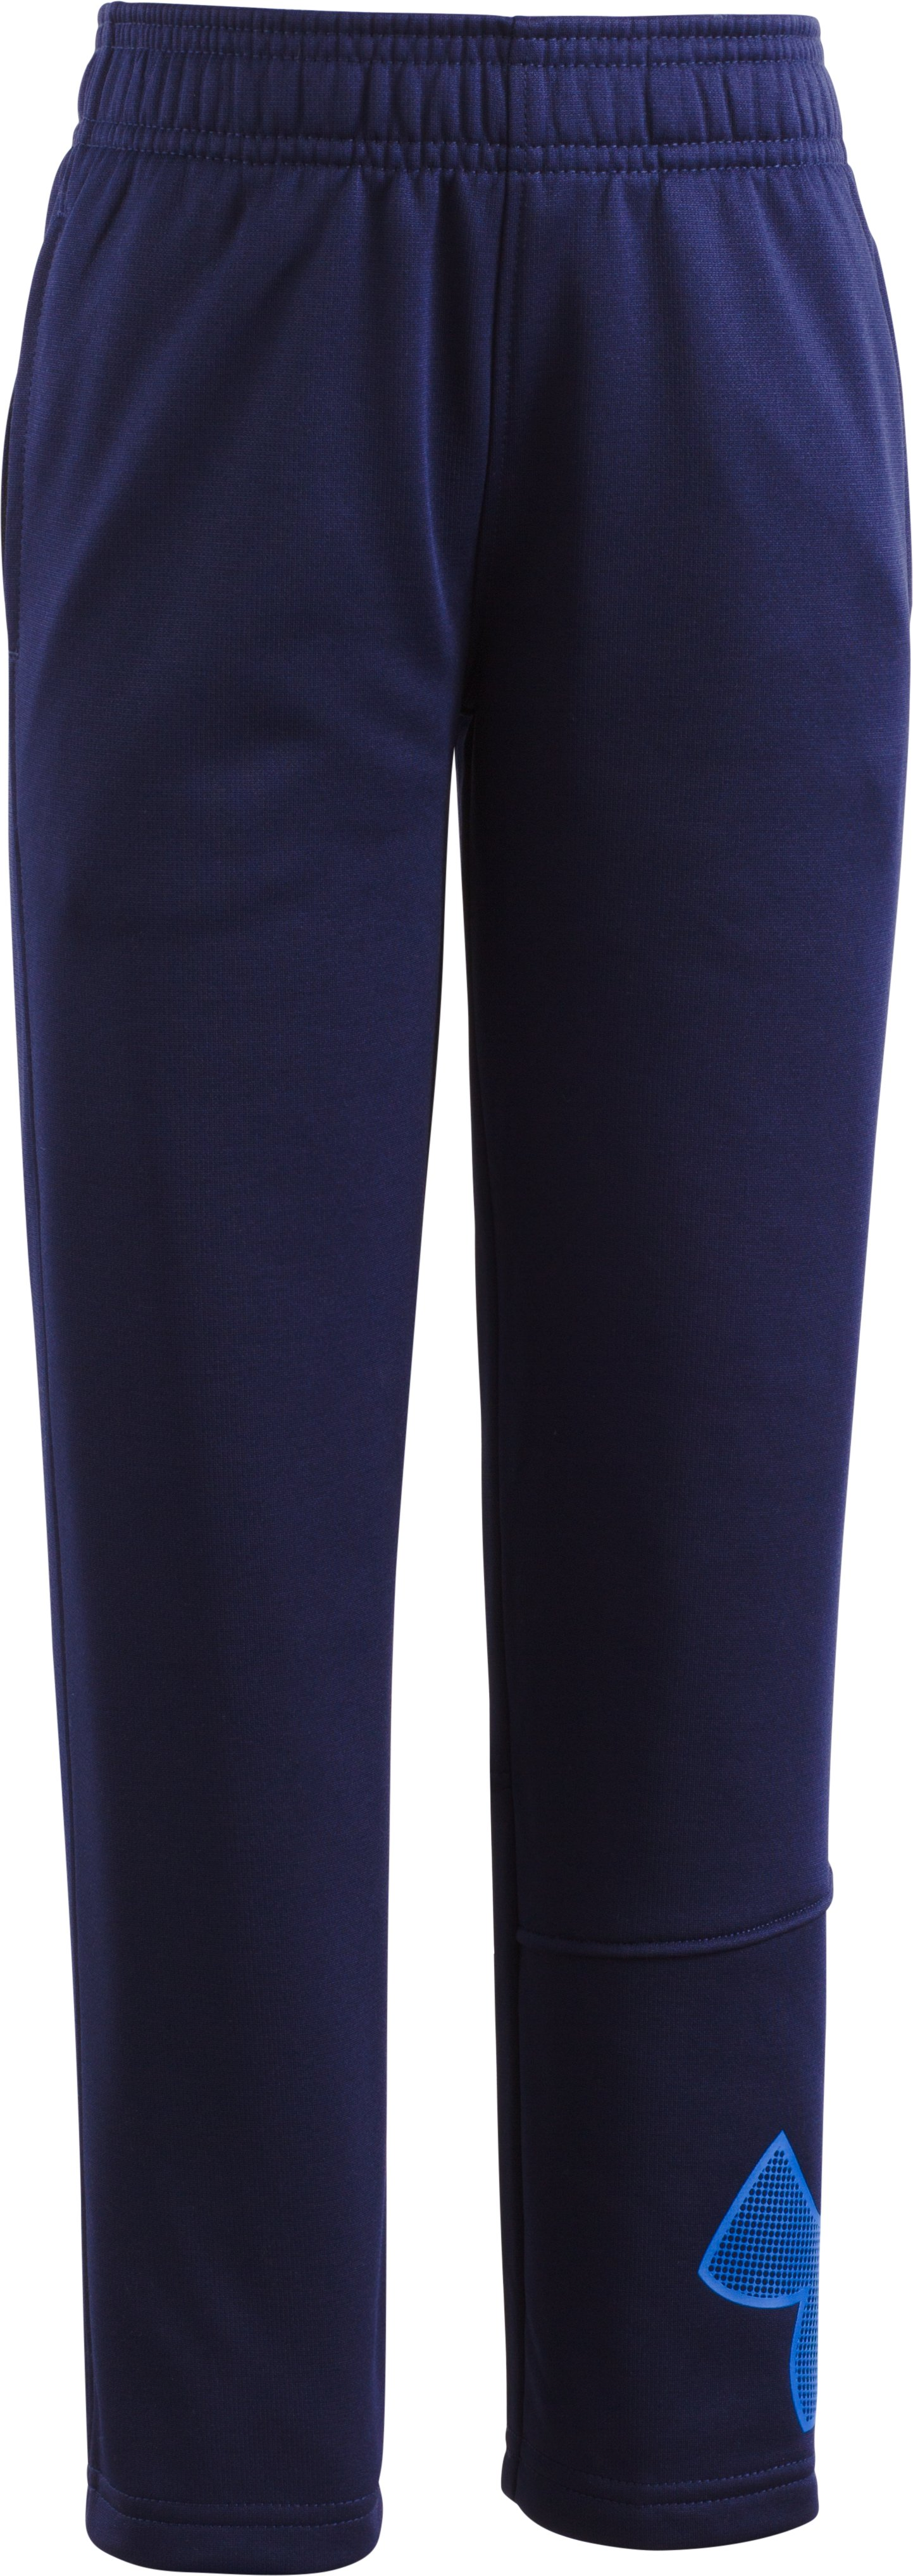 AF Big Logo Pant 4-7, Midnight Navy, zoomed